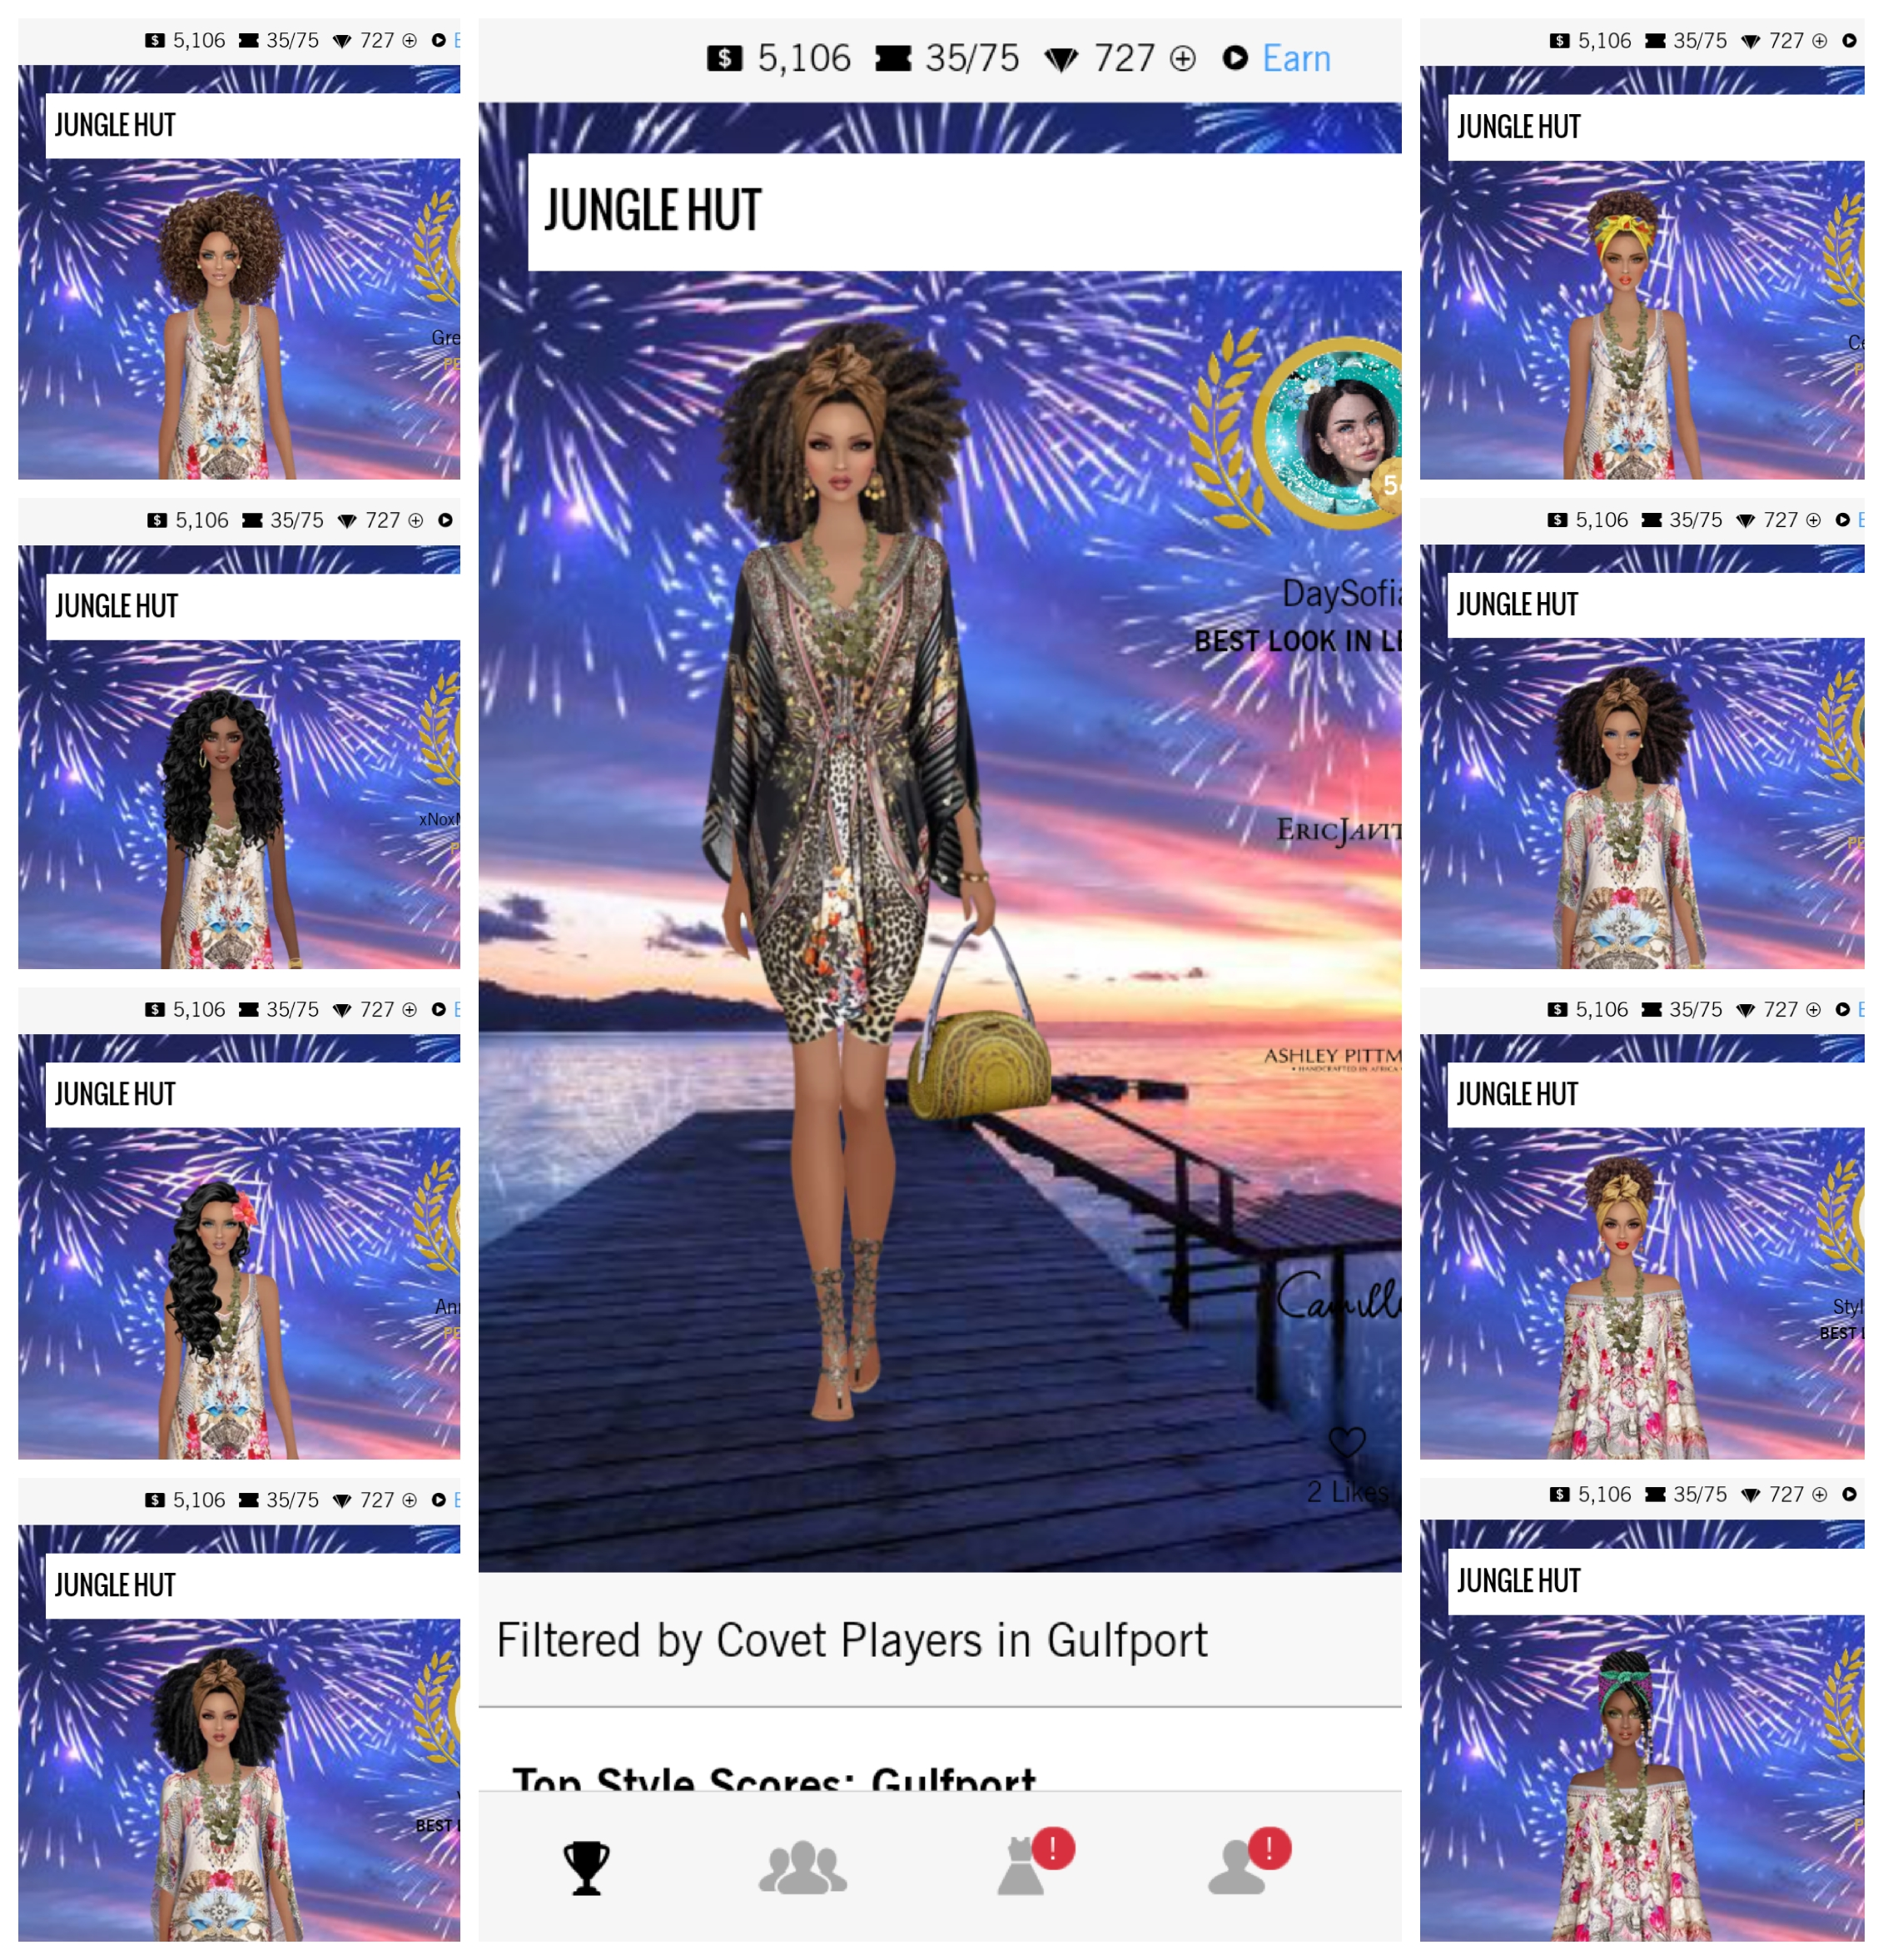 Covet Fashion Reviews 87 Reviews Of Covetfashion Com Sitejabber